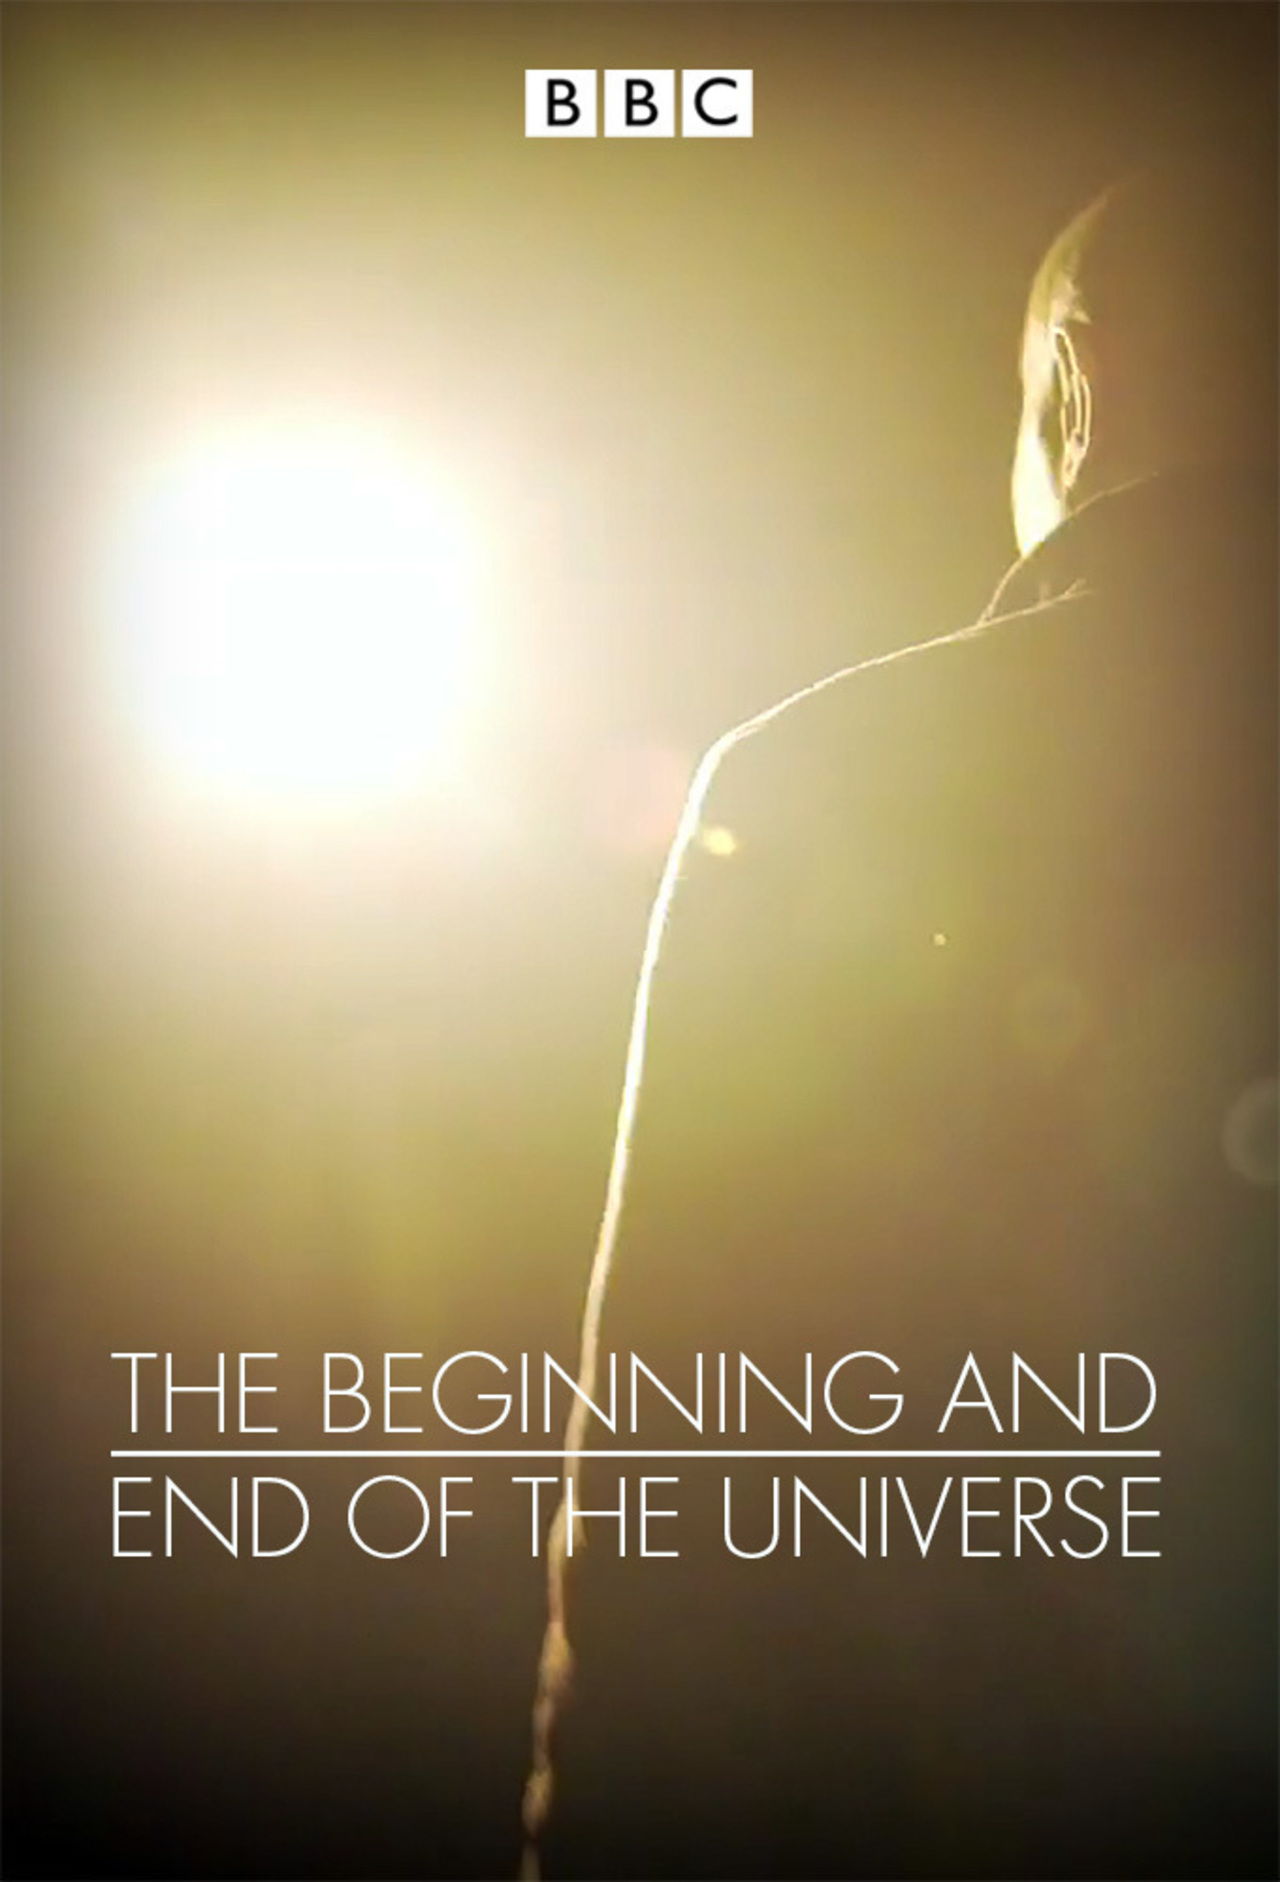 The Beginning and End of the Universe kapak